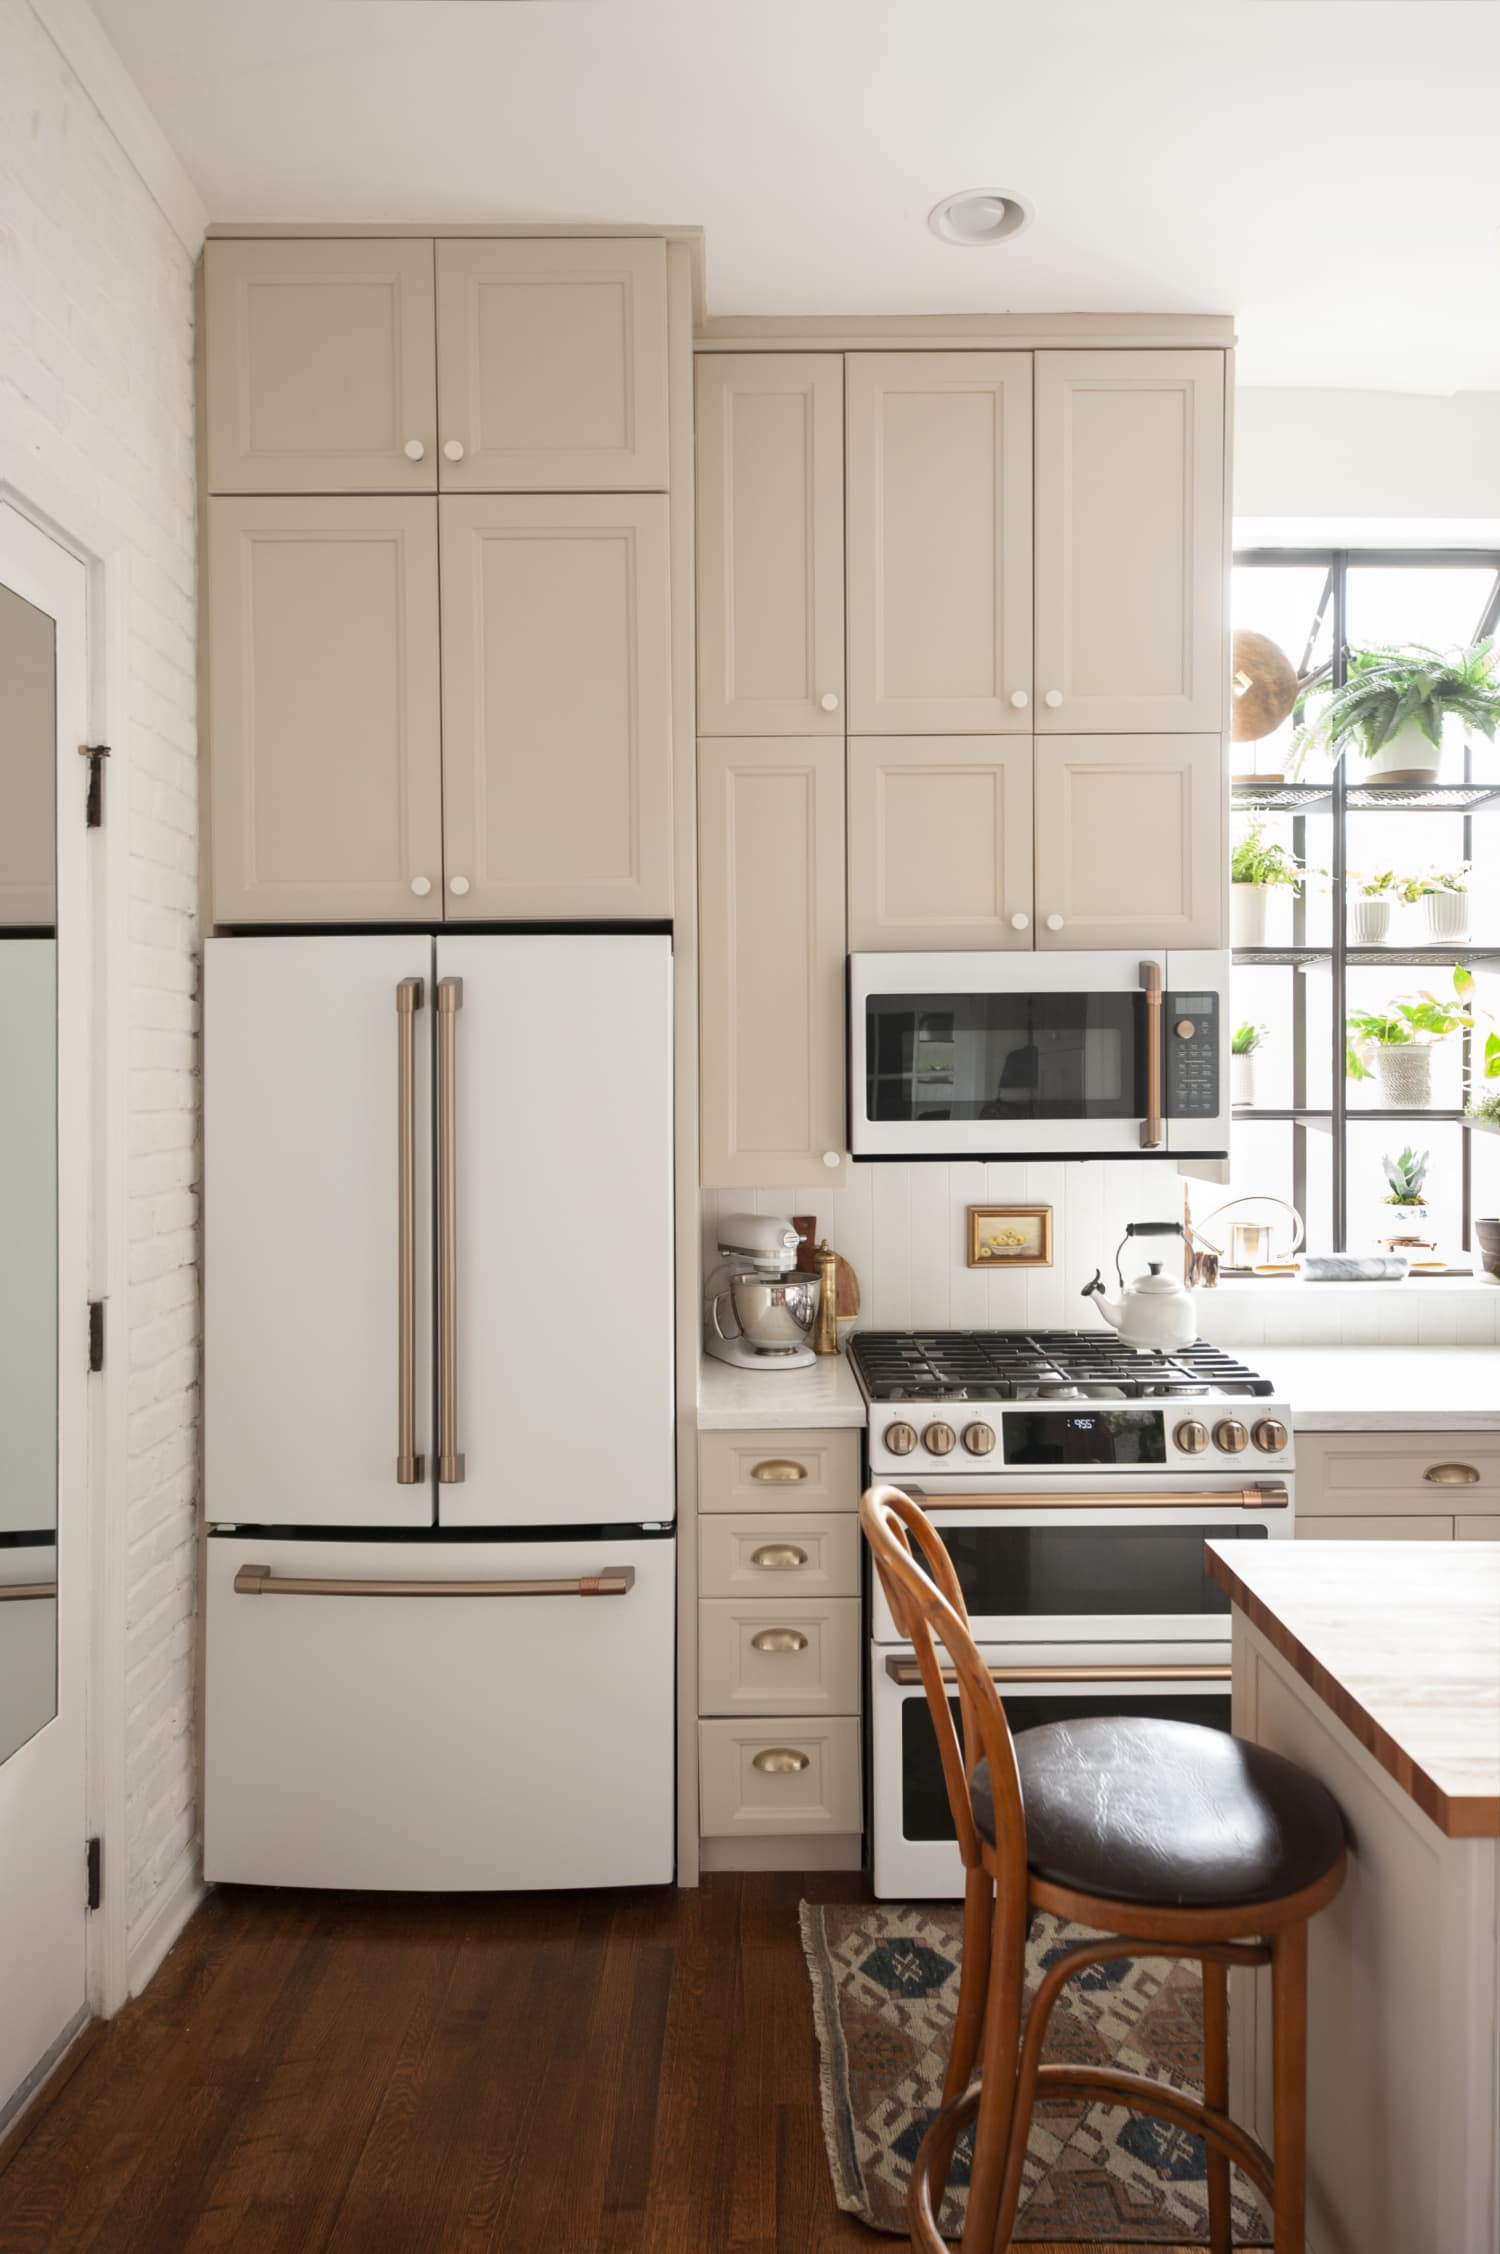 This 150-Square-Foot Kitchen in Chicago Got a DIY Renovation for Less than $16,000 — Here's How Every Dollar Was Spent